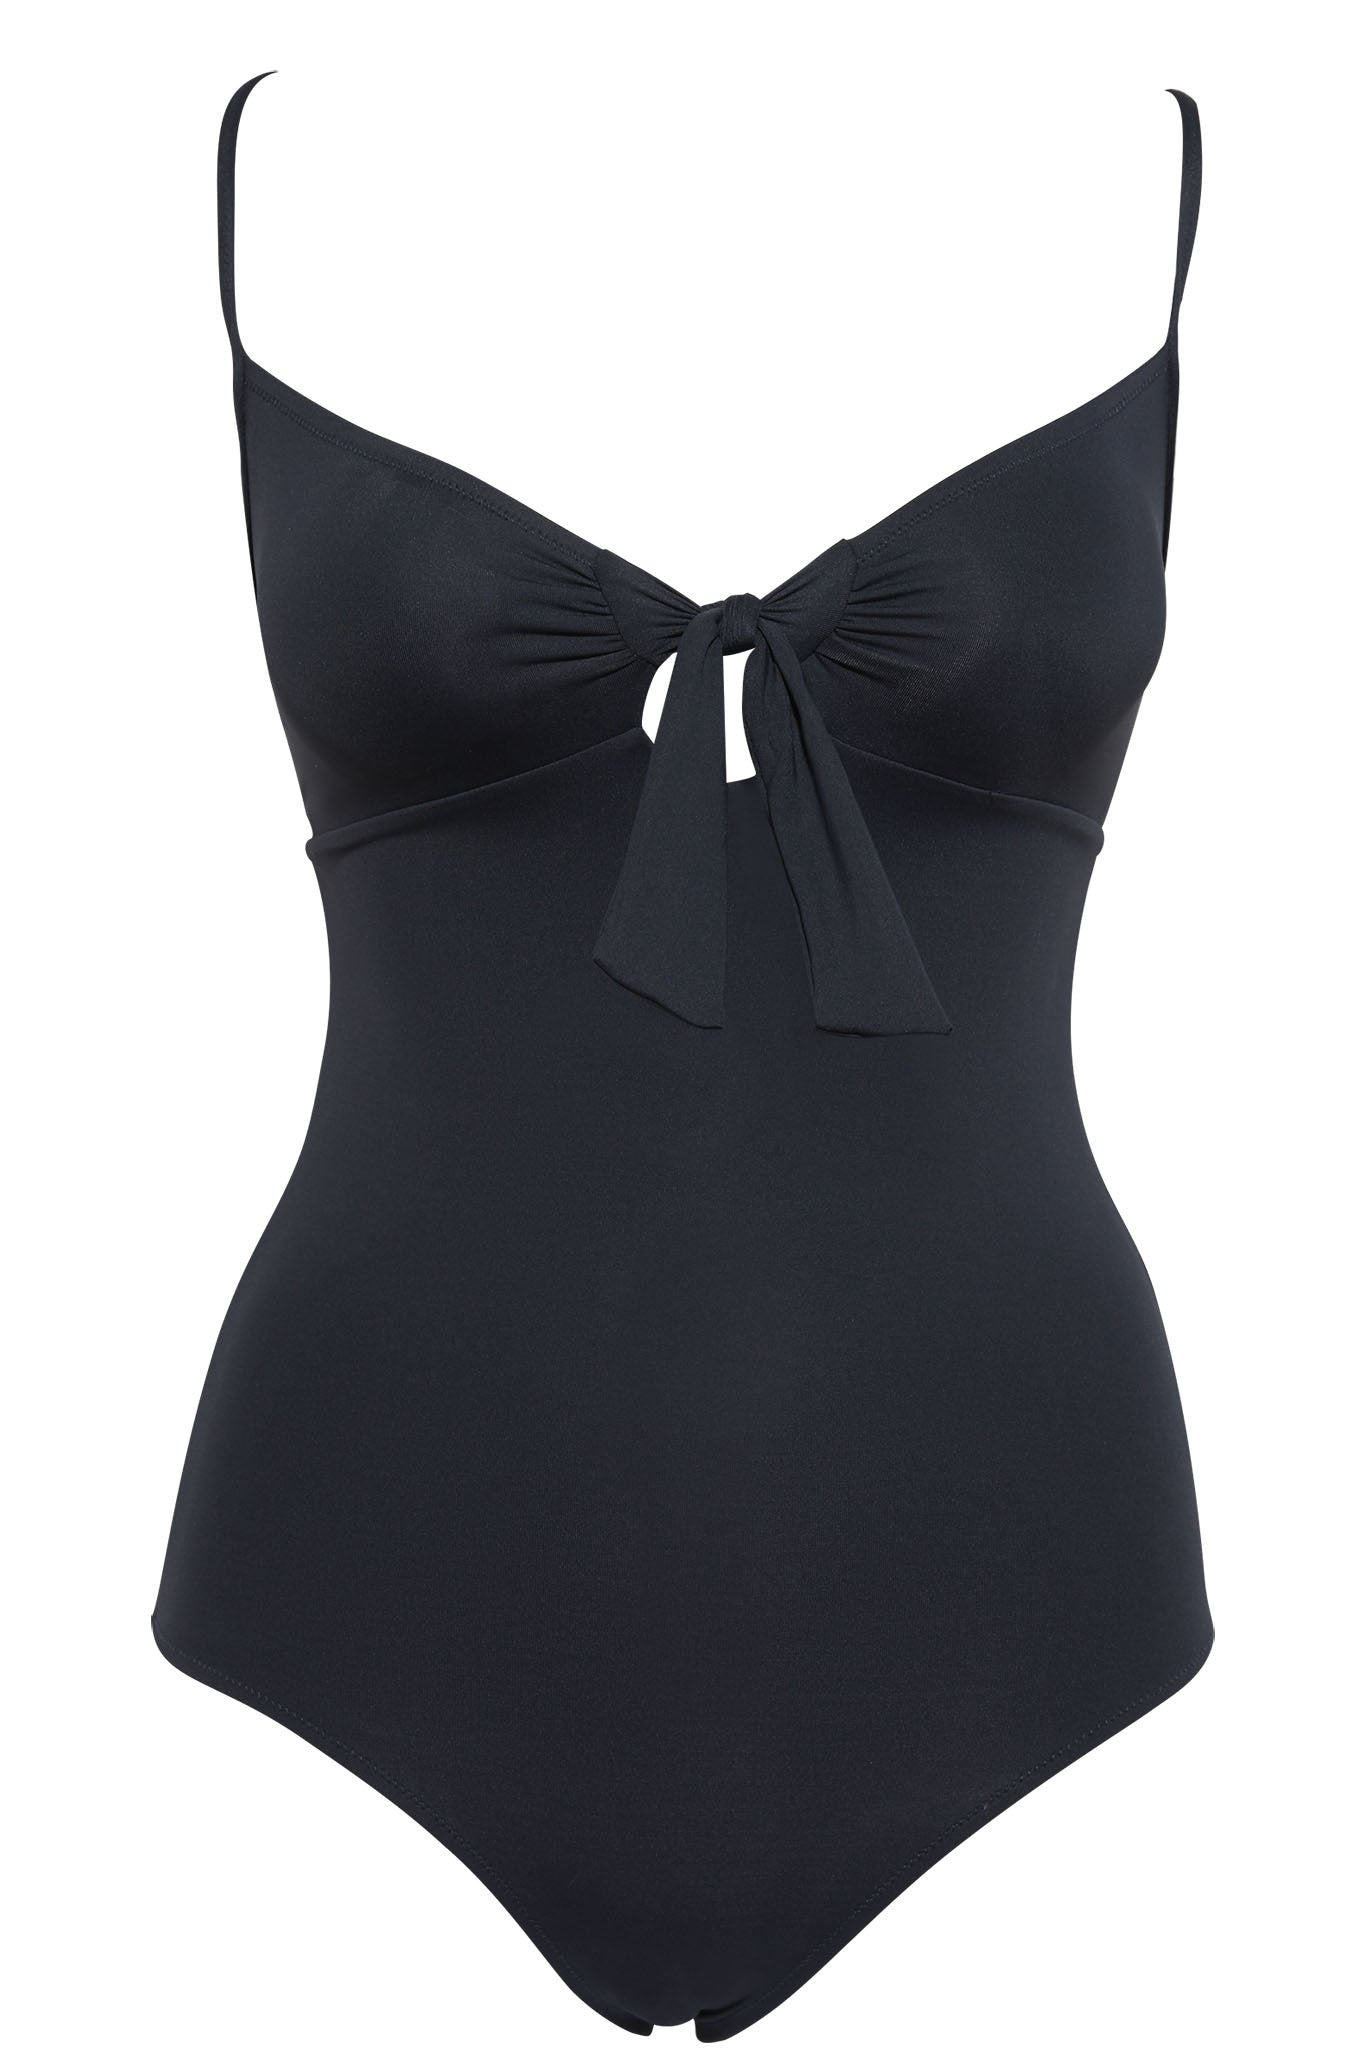 Amberly - One-Piece - Classic Black